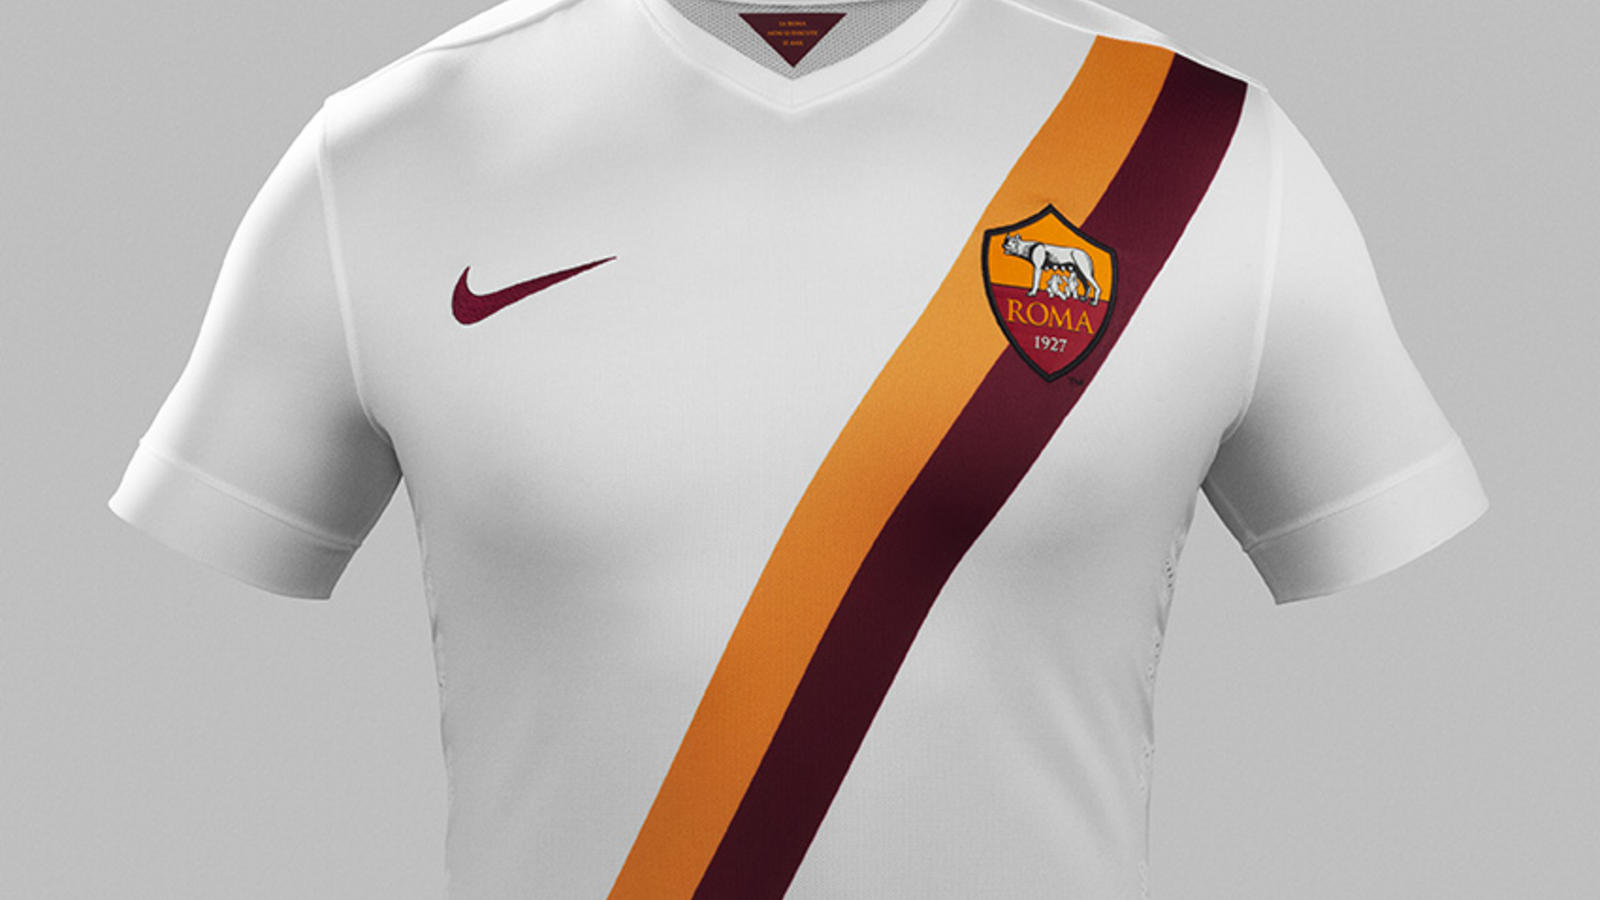 Nike and AS Roma Unveil New Away Kit for 2014-15 Season - Nike News 20a8a6fab